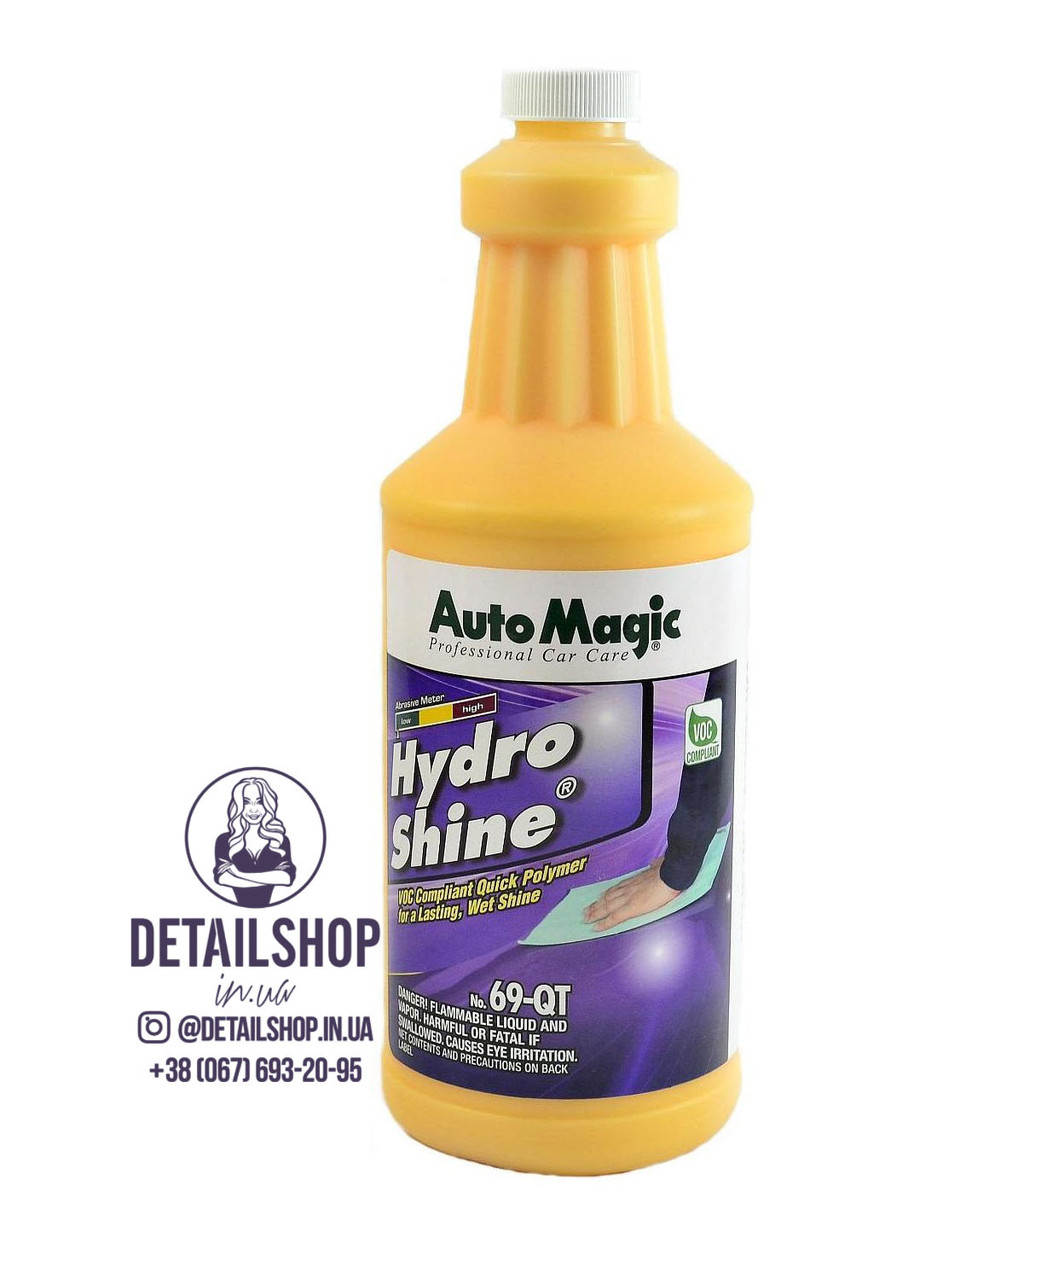 Auto Magic Hydro Shine 69-QT полимер-консервант